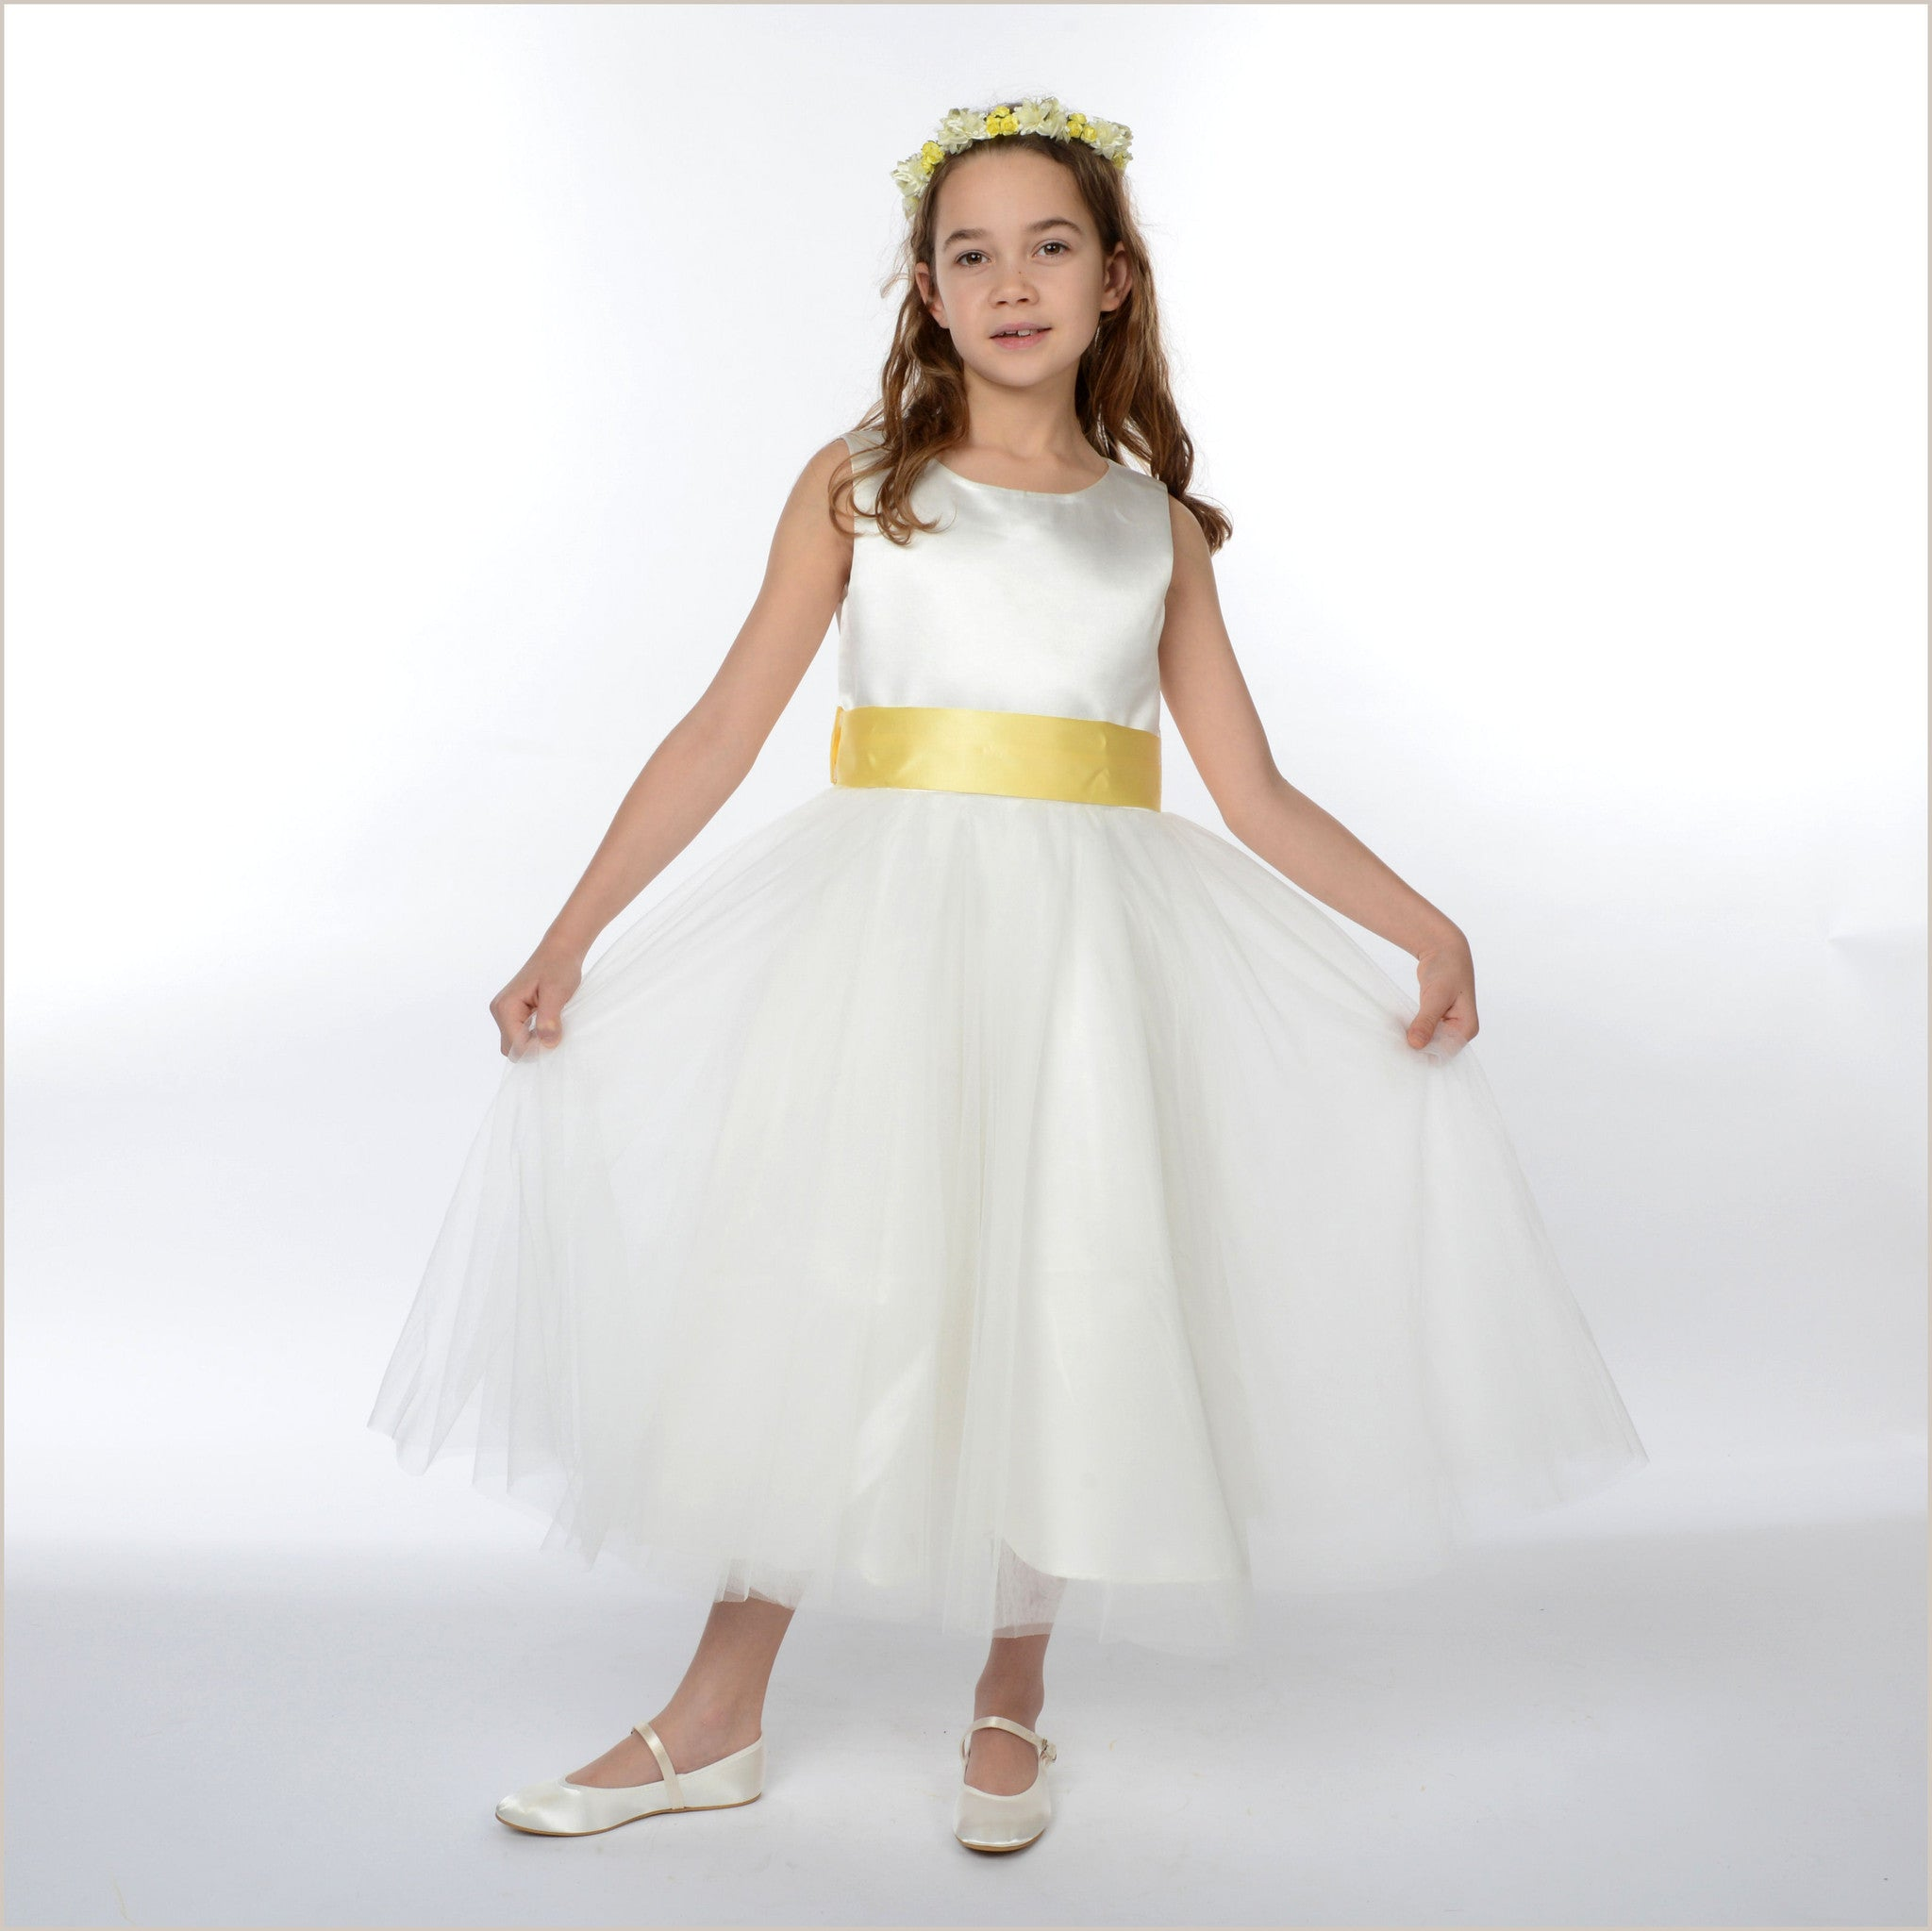 Ivory flower girl dress olivia also with plus size flower girl dresses olivia perfect ivory flower girl dress also in plus sizes mightylinksfo